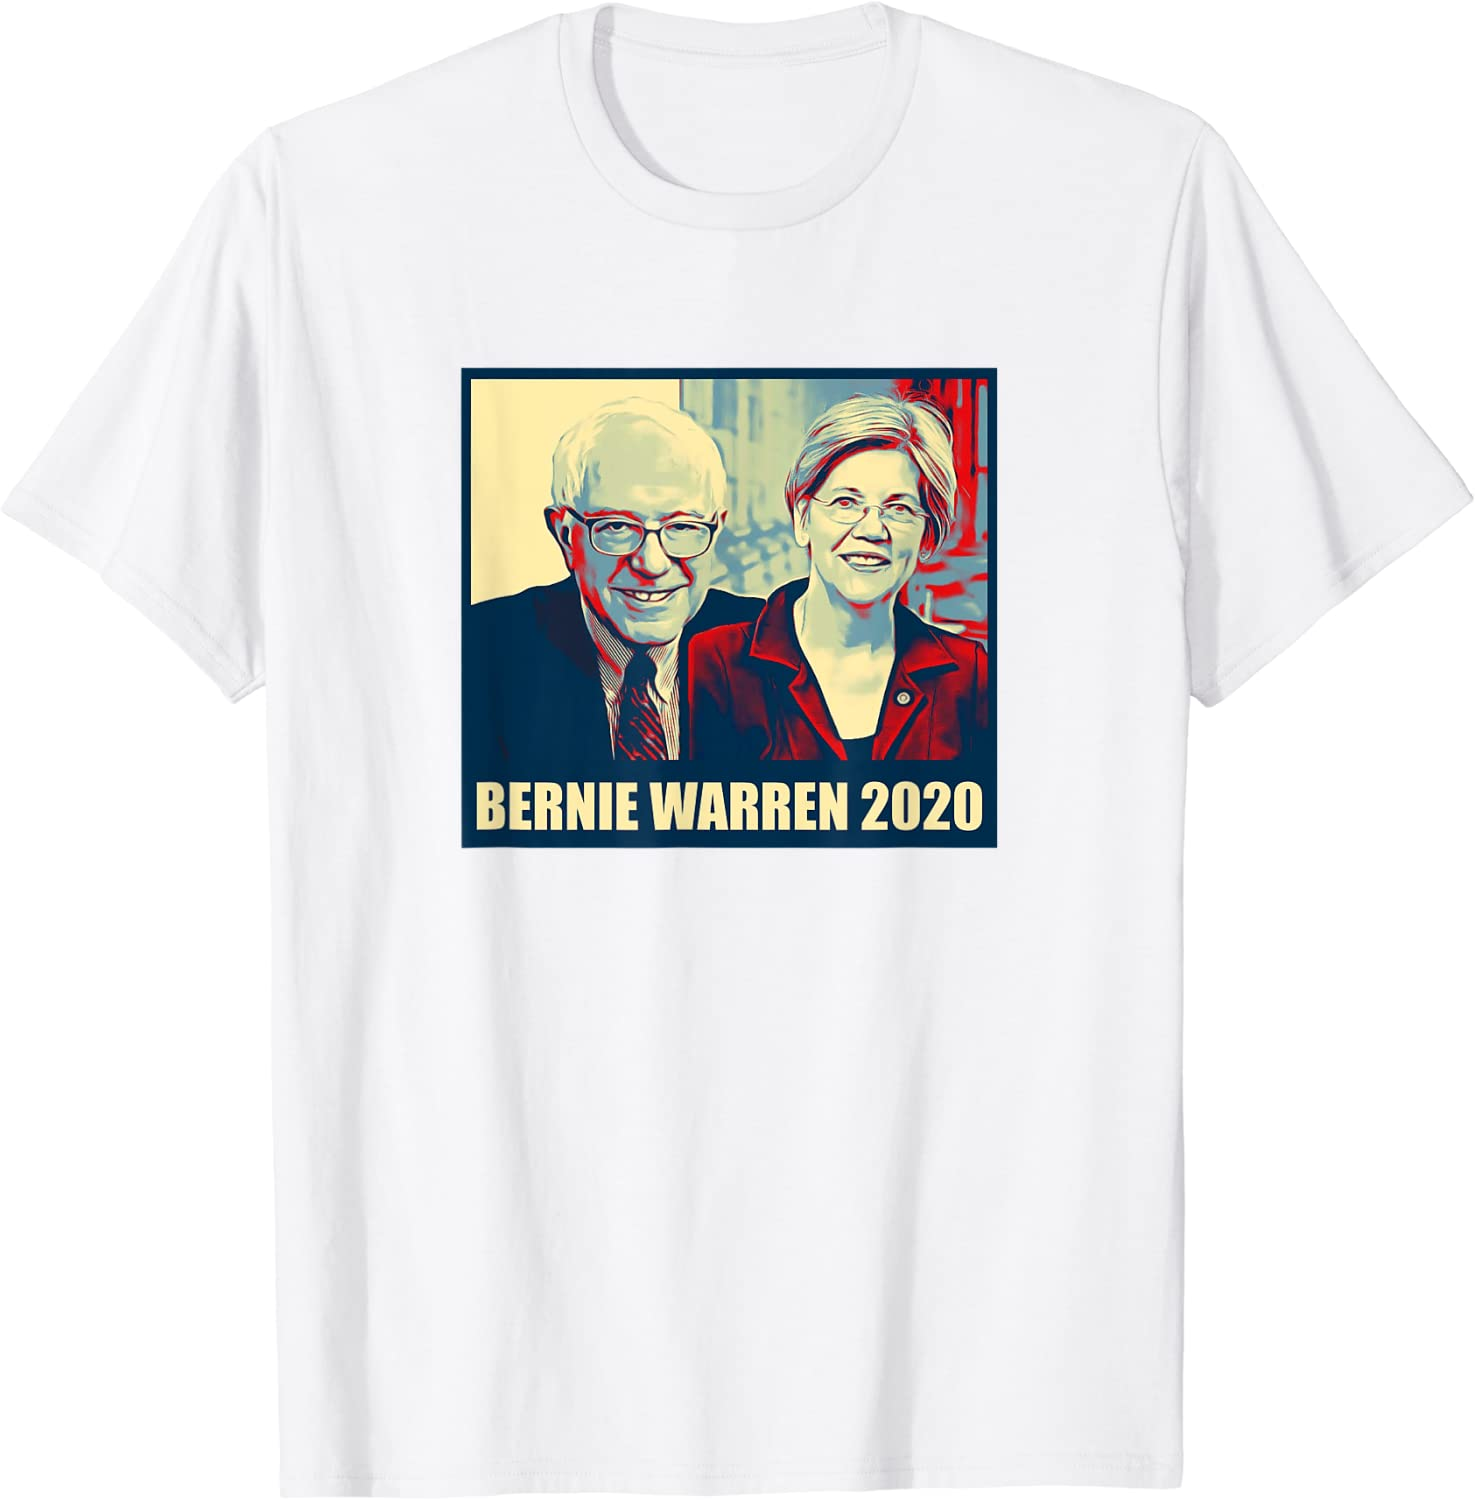 Bernie 2020 Presidential Campaign Candidate Men/'s T-shirt election tee